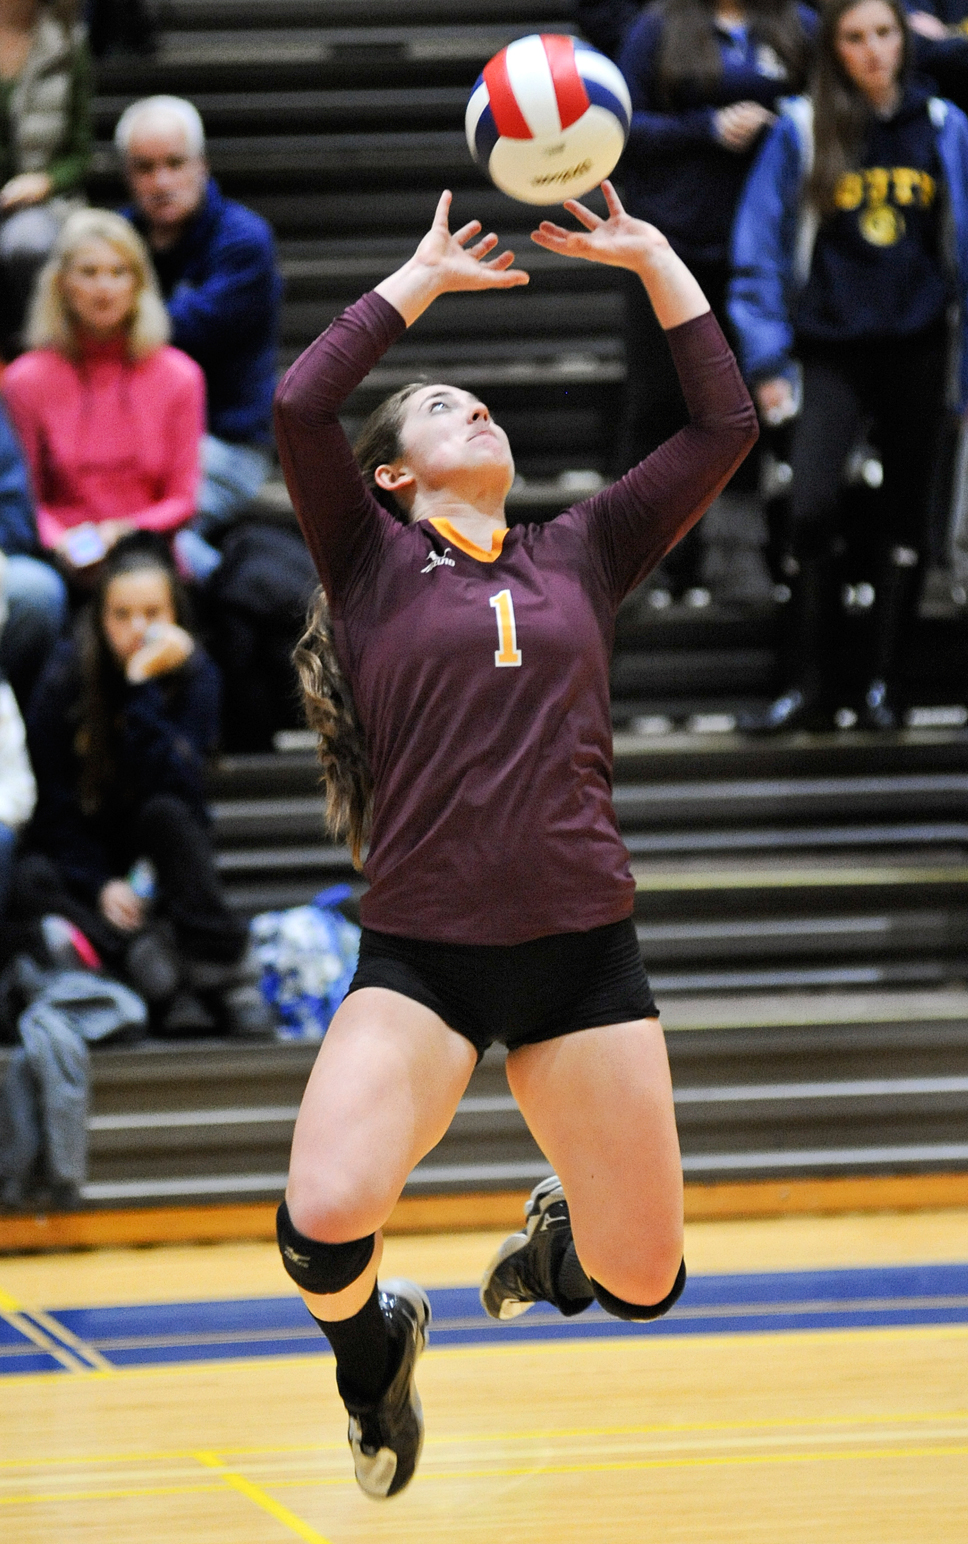 Loyola Academy's junior setter Katie Randolph. Photography by George Pfoertner